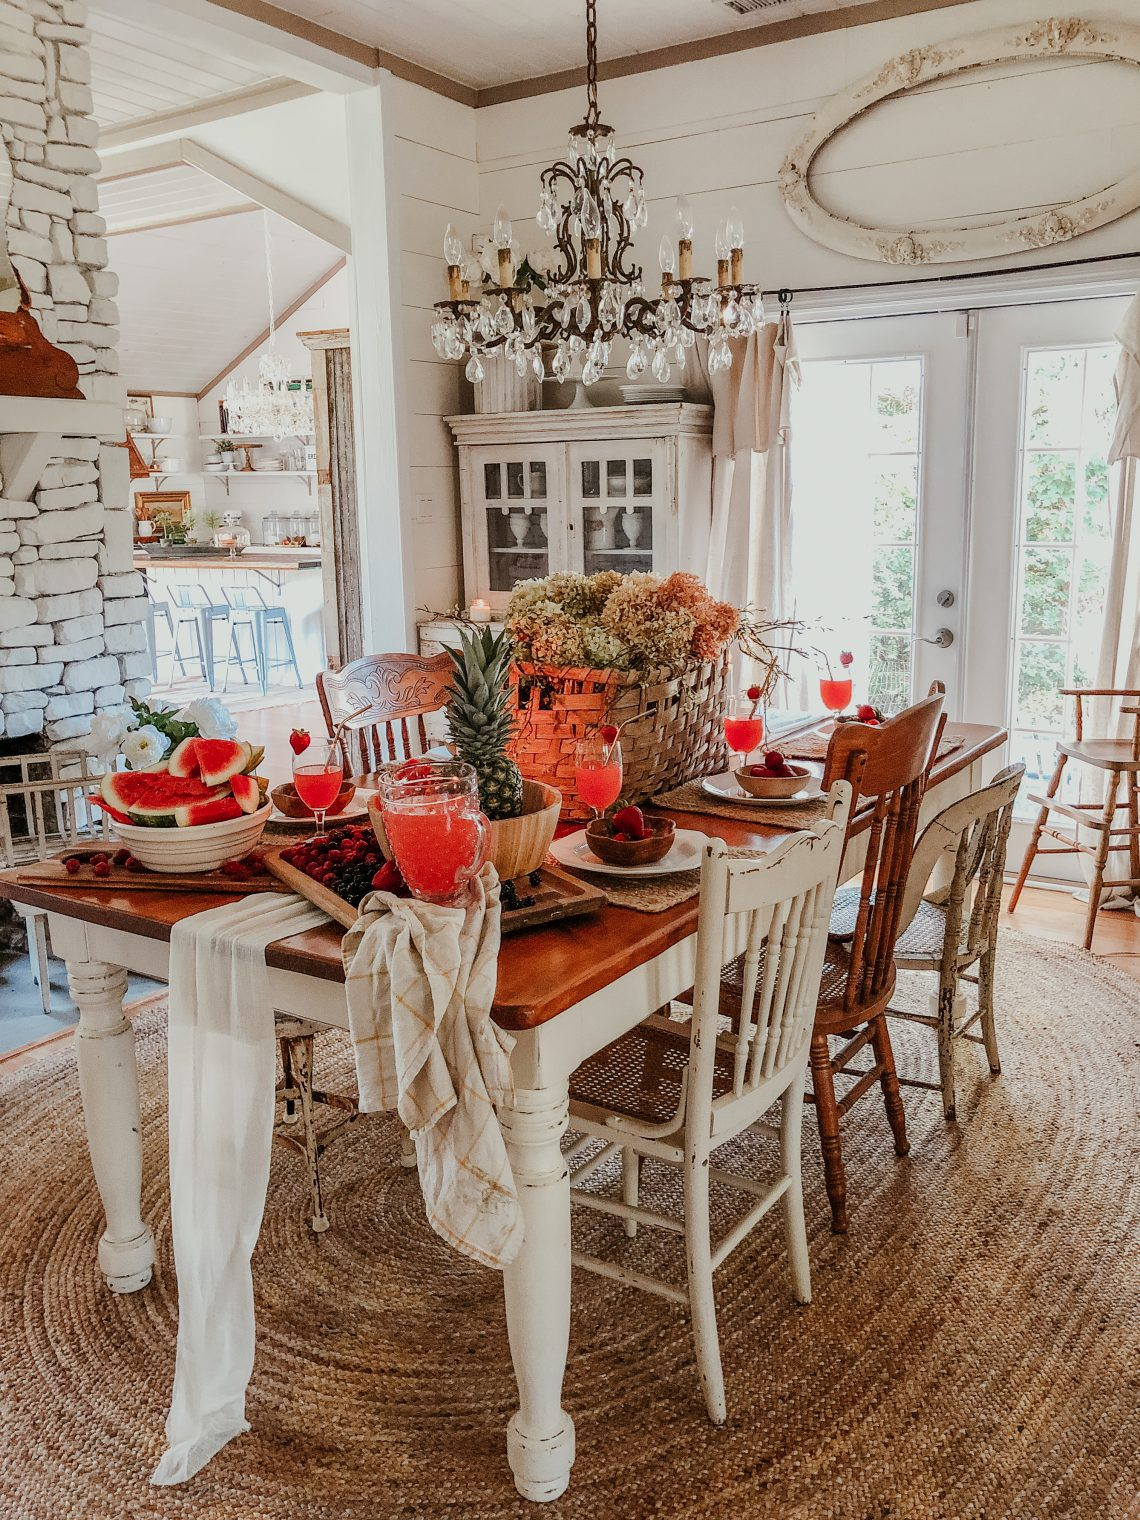 Beautiful farmhouse dining room with mismatched old chairs and crystal chandelier kellyelko.com #diningroom #diningroomdecor #vintagedecor #farmhousedecor #farmhousestyle #neutraldecor #shiplap